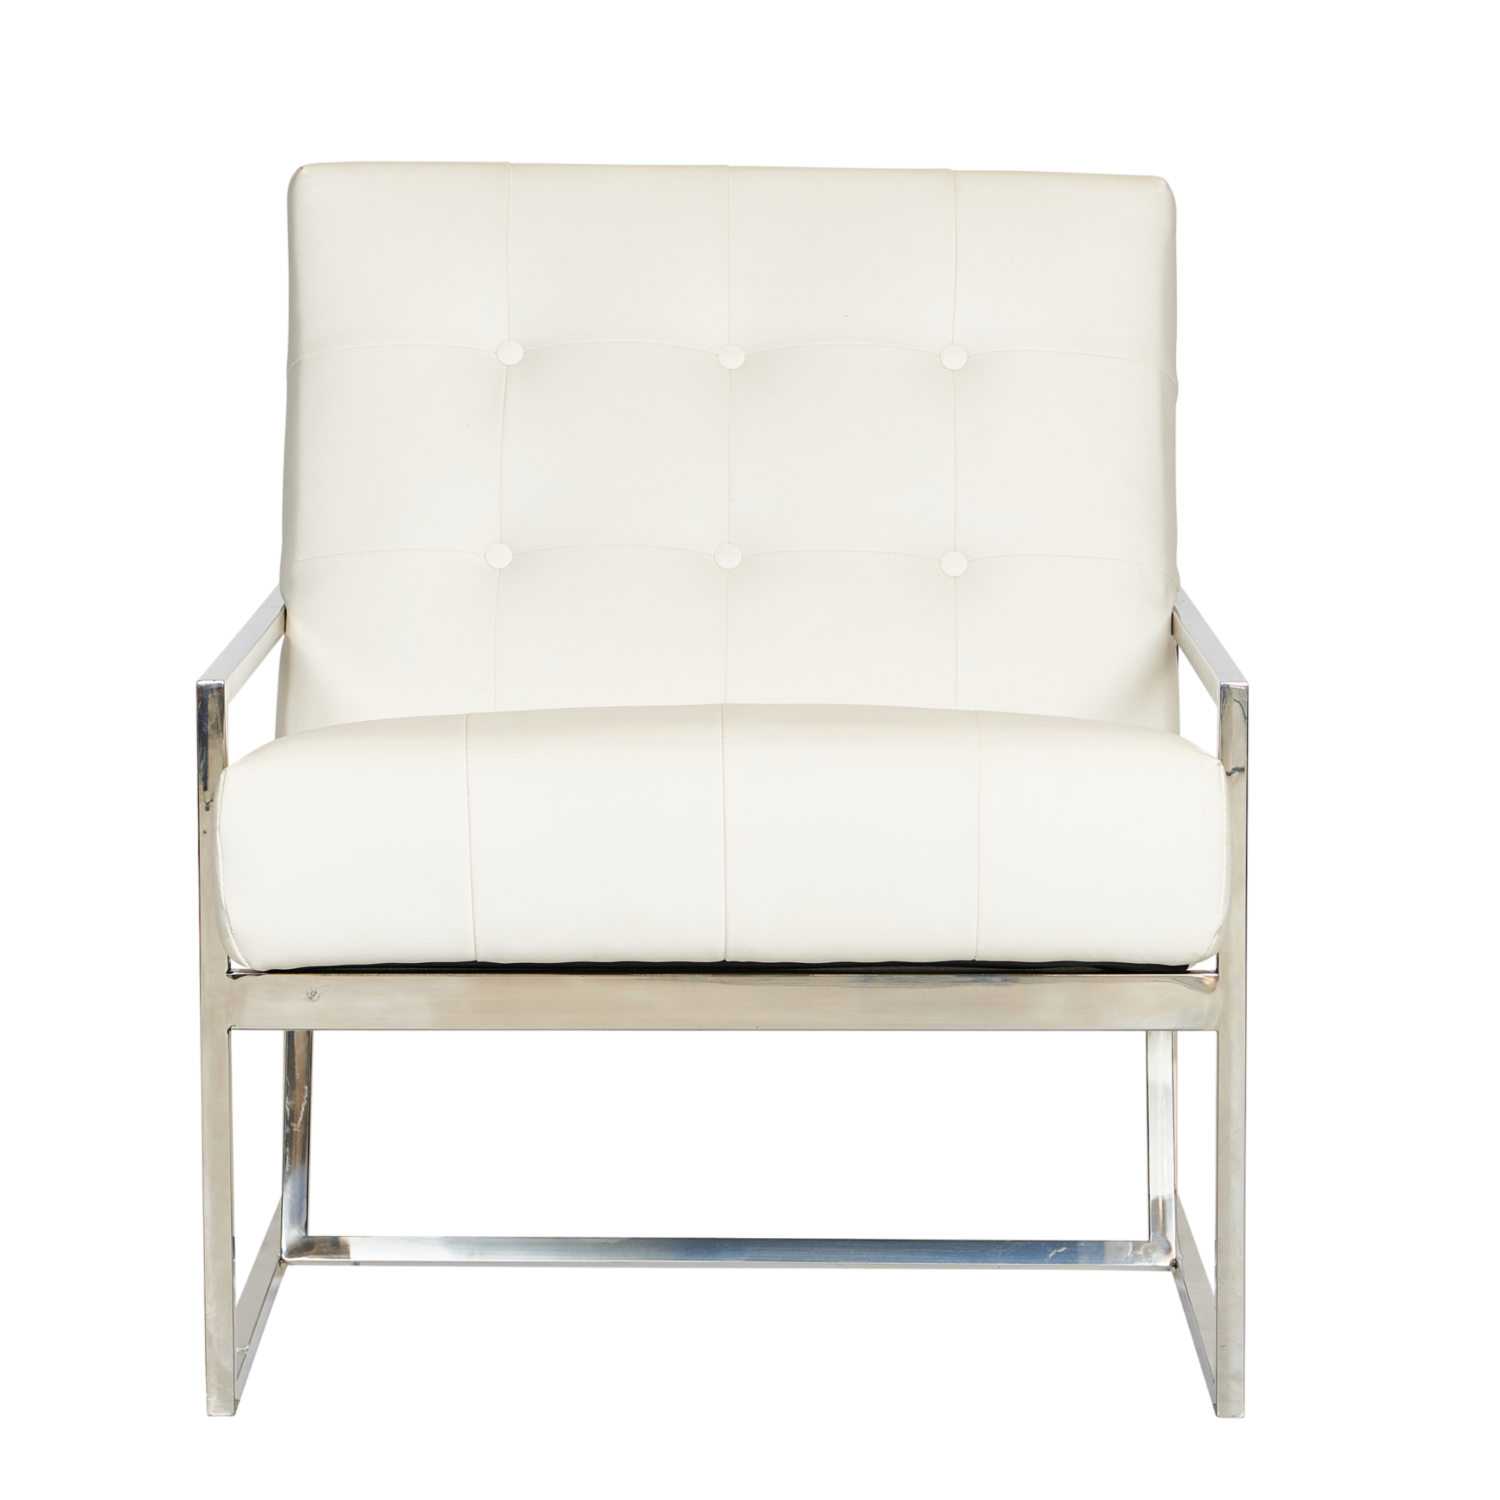 Starlet Armchair - White / Silver Frame - Event Artillery